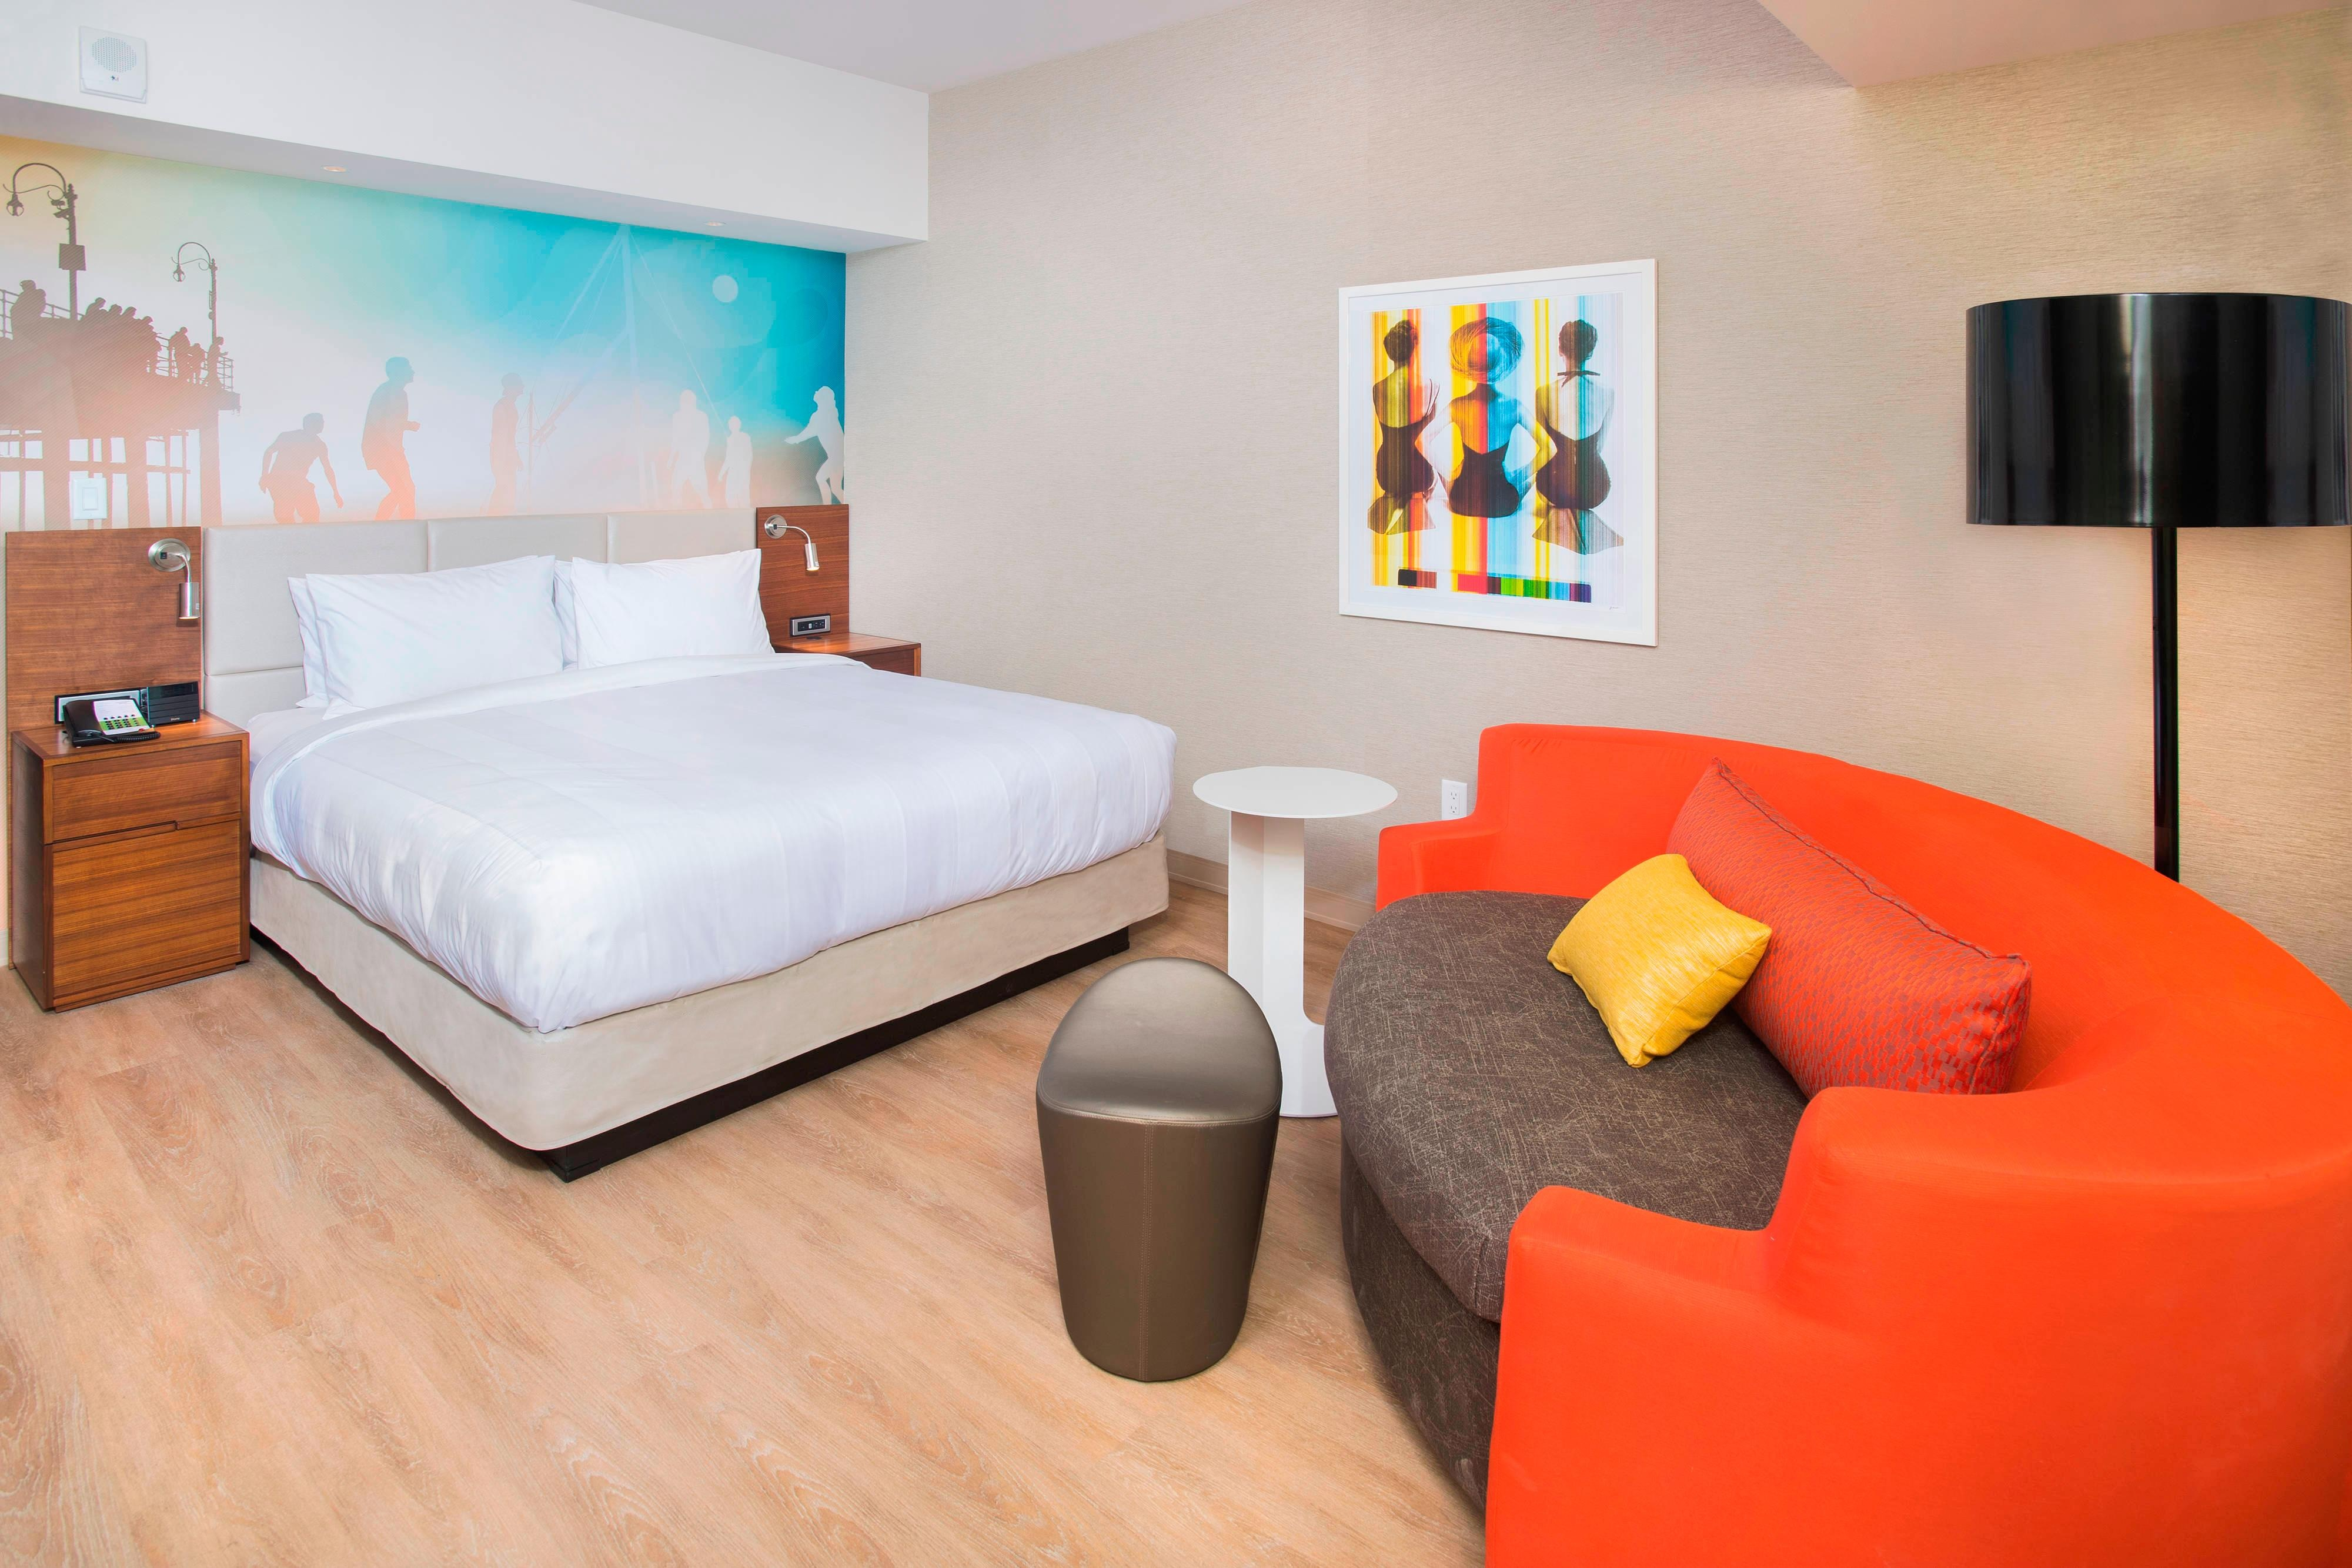 New Downtown Santa Monica Pier Hotel - Courtyard by Marriott